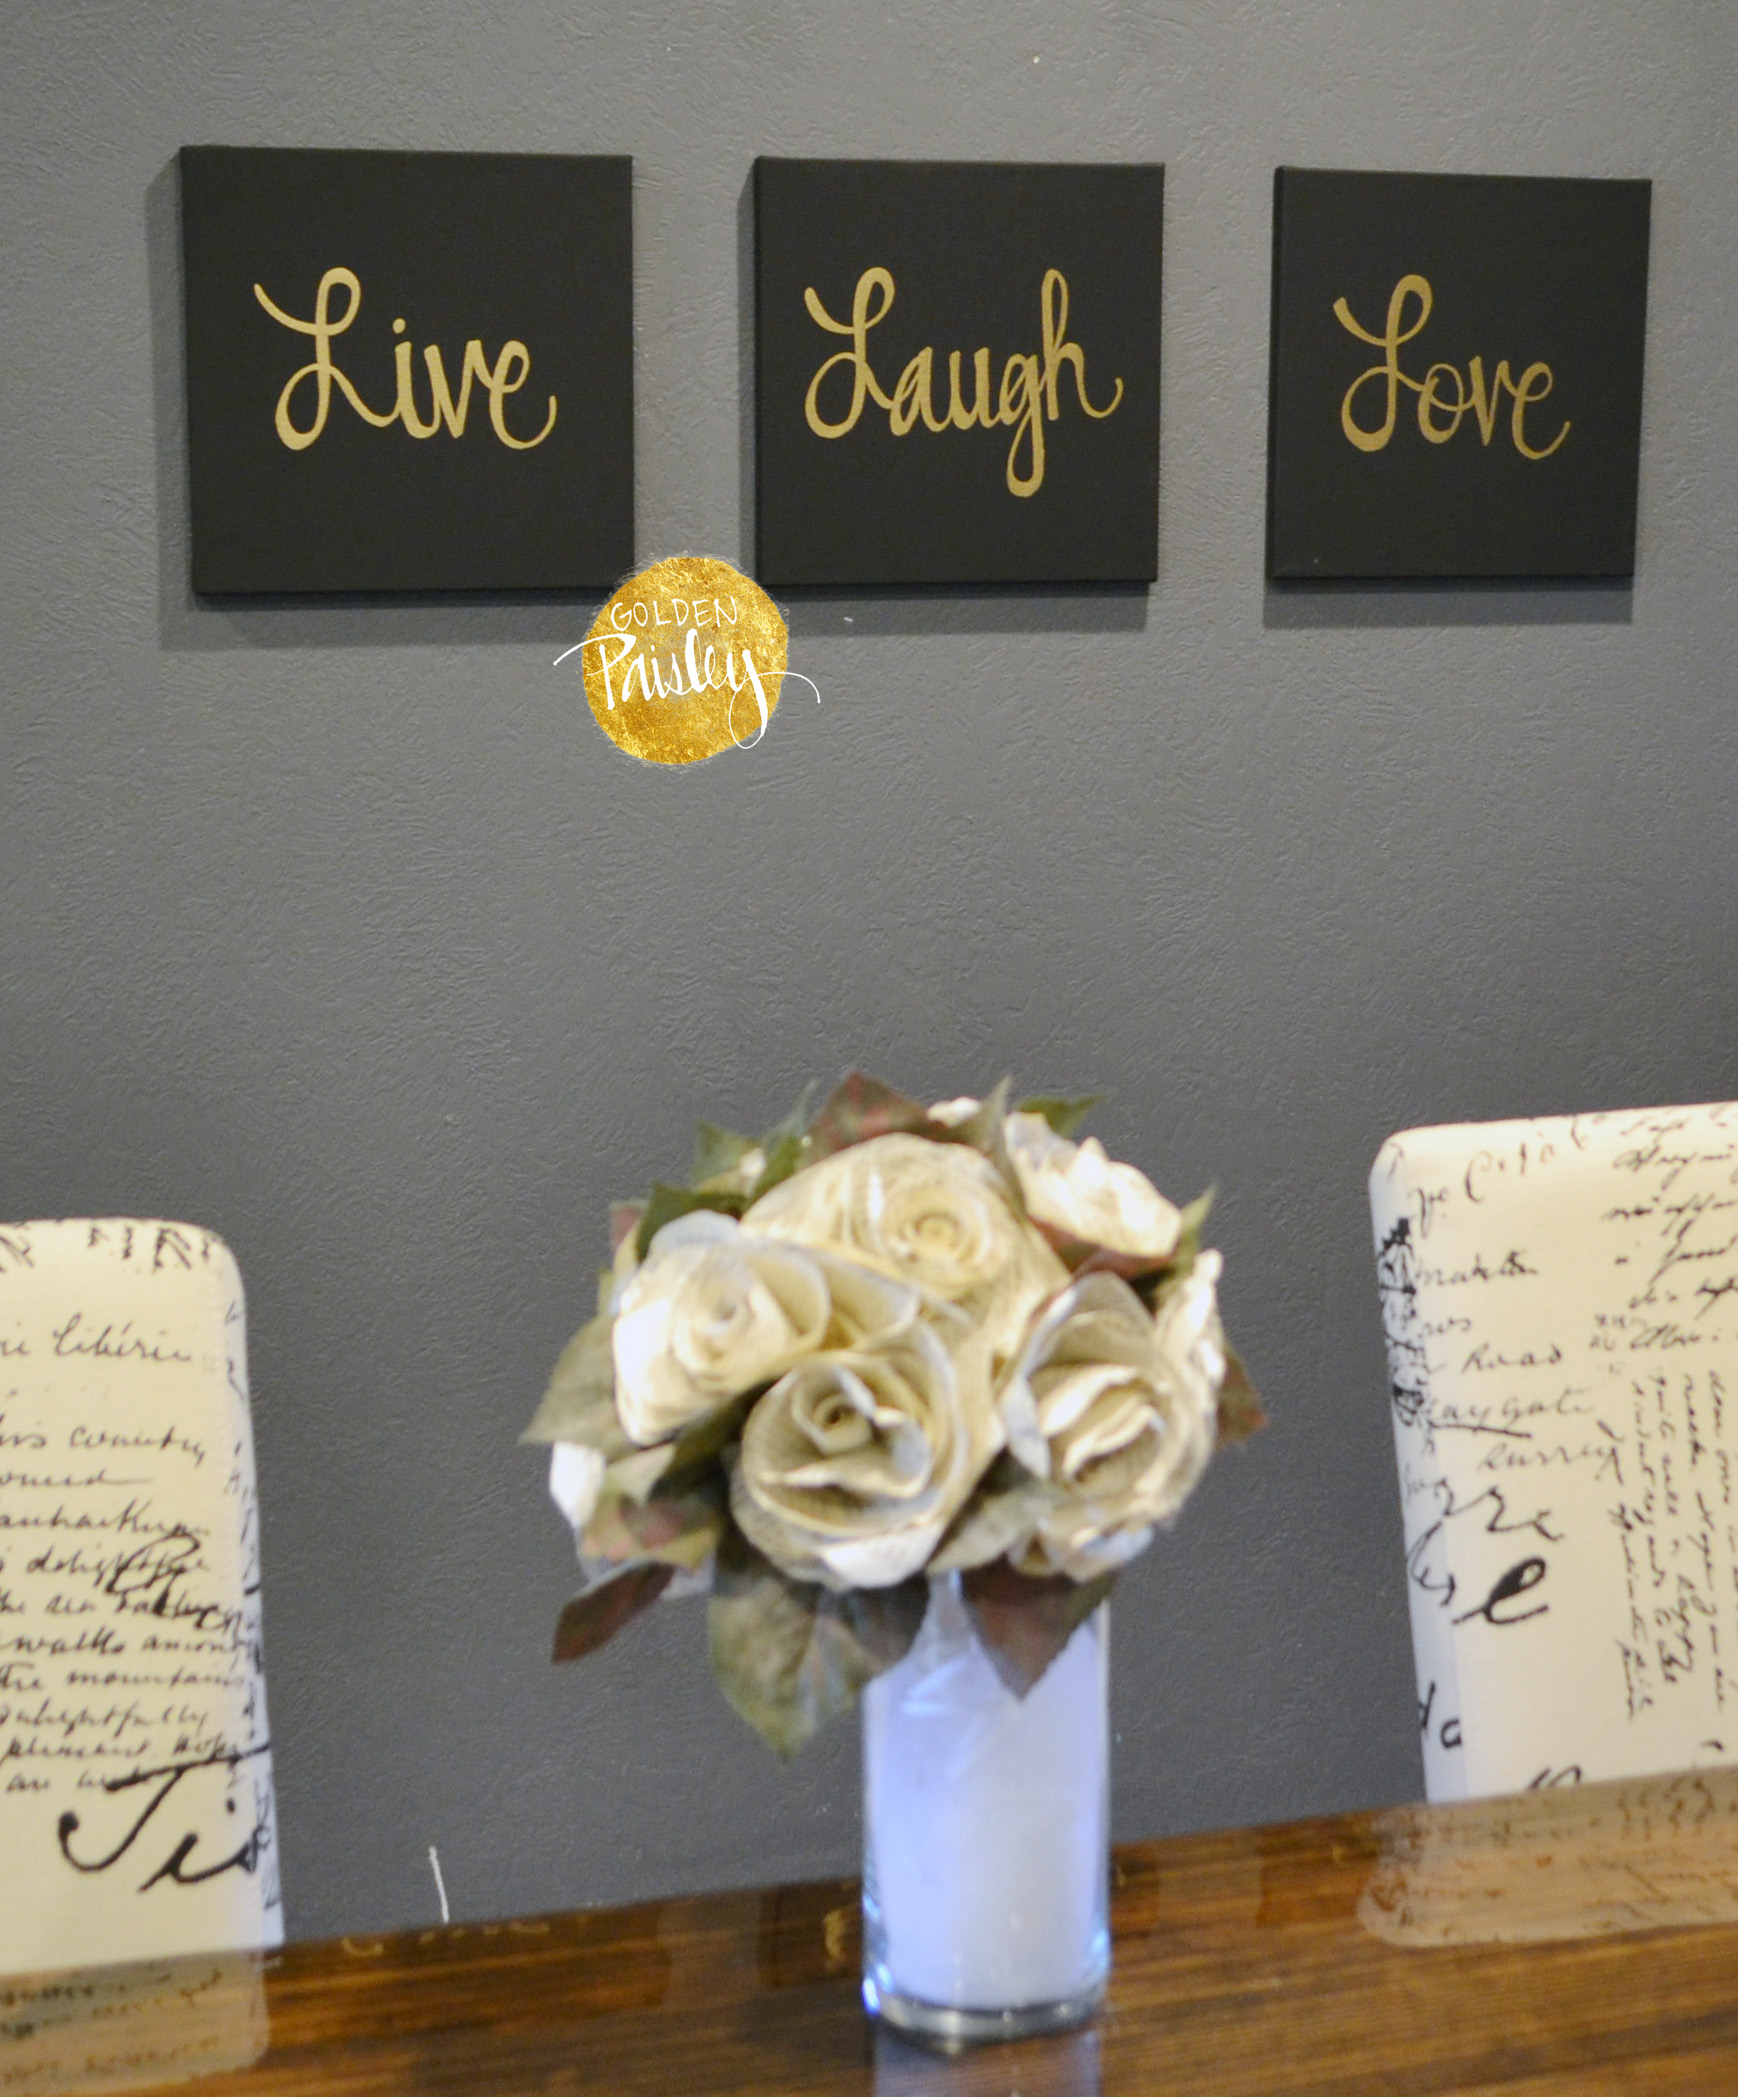 2019 Live Laugh Love Black & Gold 3 Piece Wall Decor Set Pertaining To Live Love Laugh 3 Piece Black Wall Decor Sets (Gallery 3 of 20)